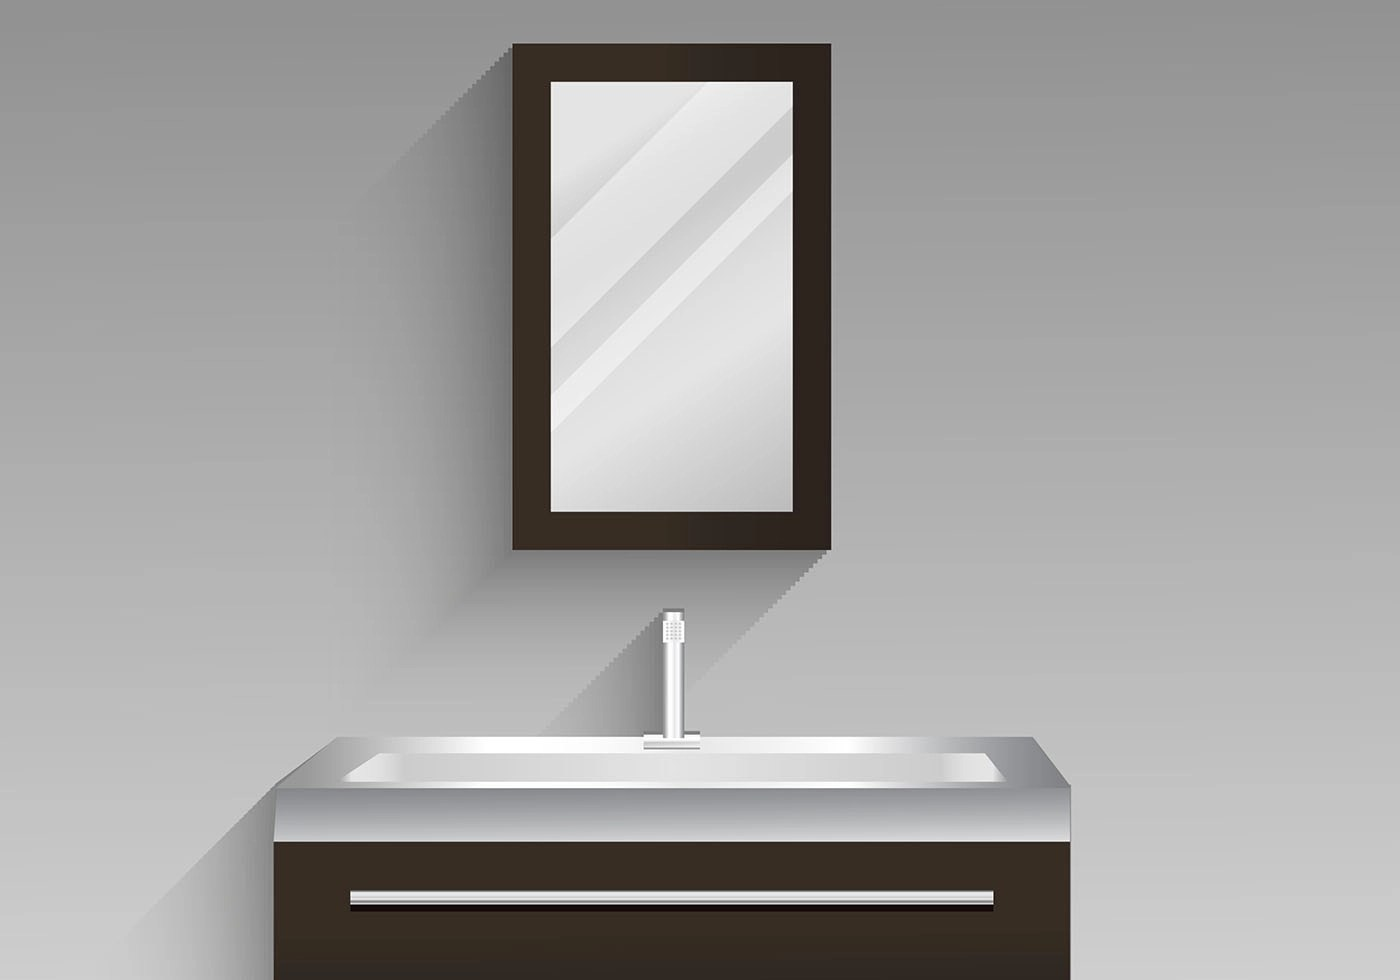 Bathroom Cabinet Vector Design Illustration Download